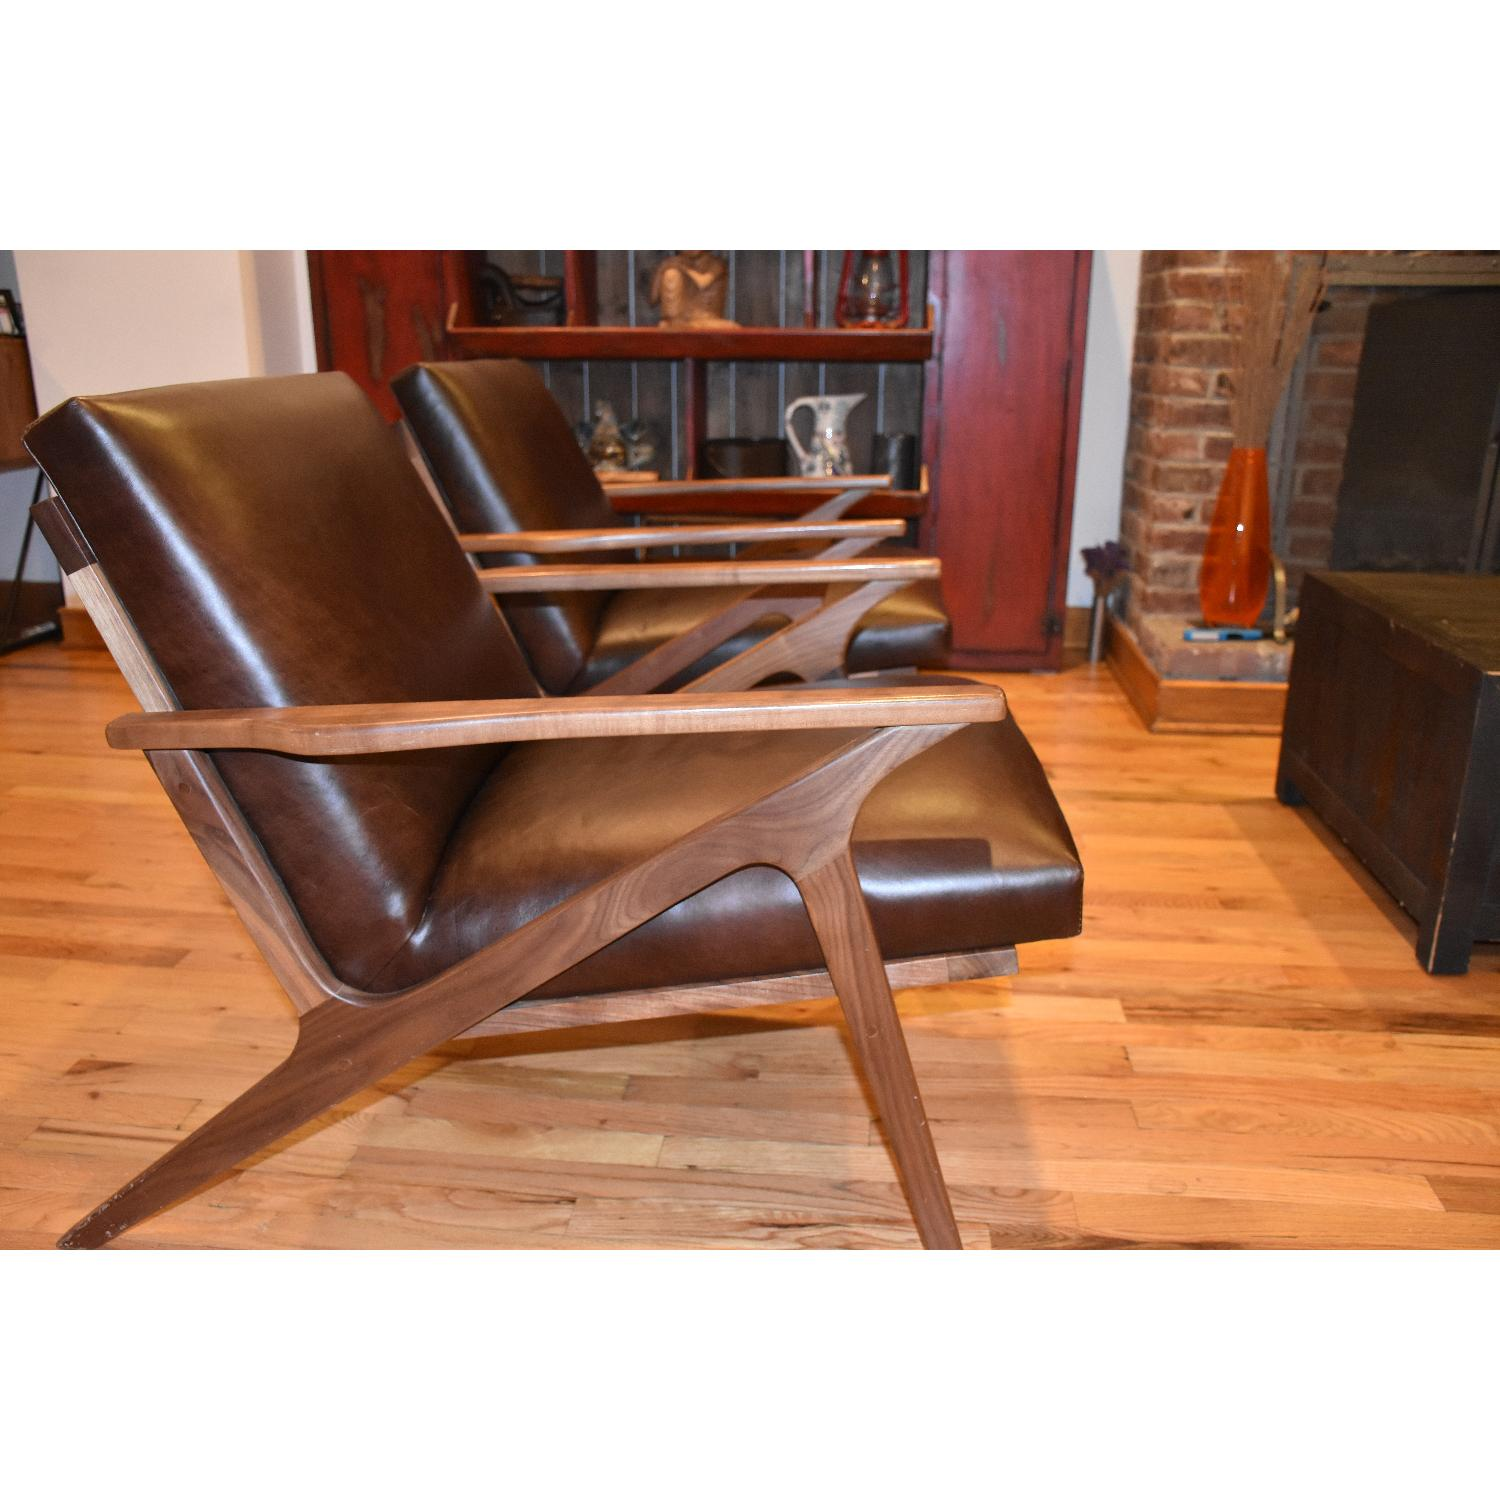 Crate & Barrel Cavett Leather Chair - image-2